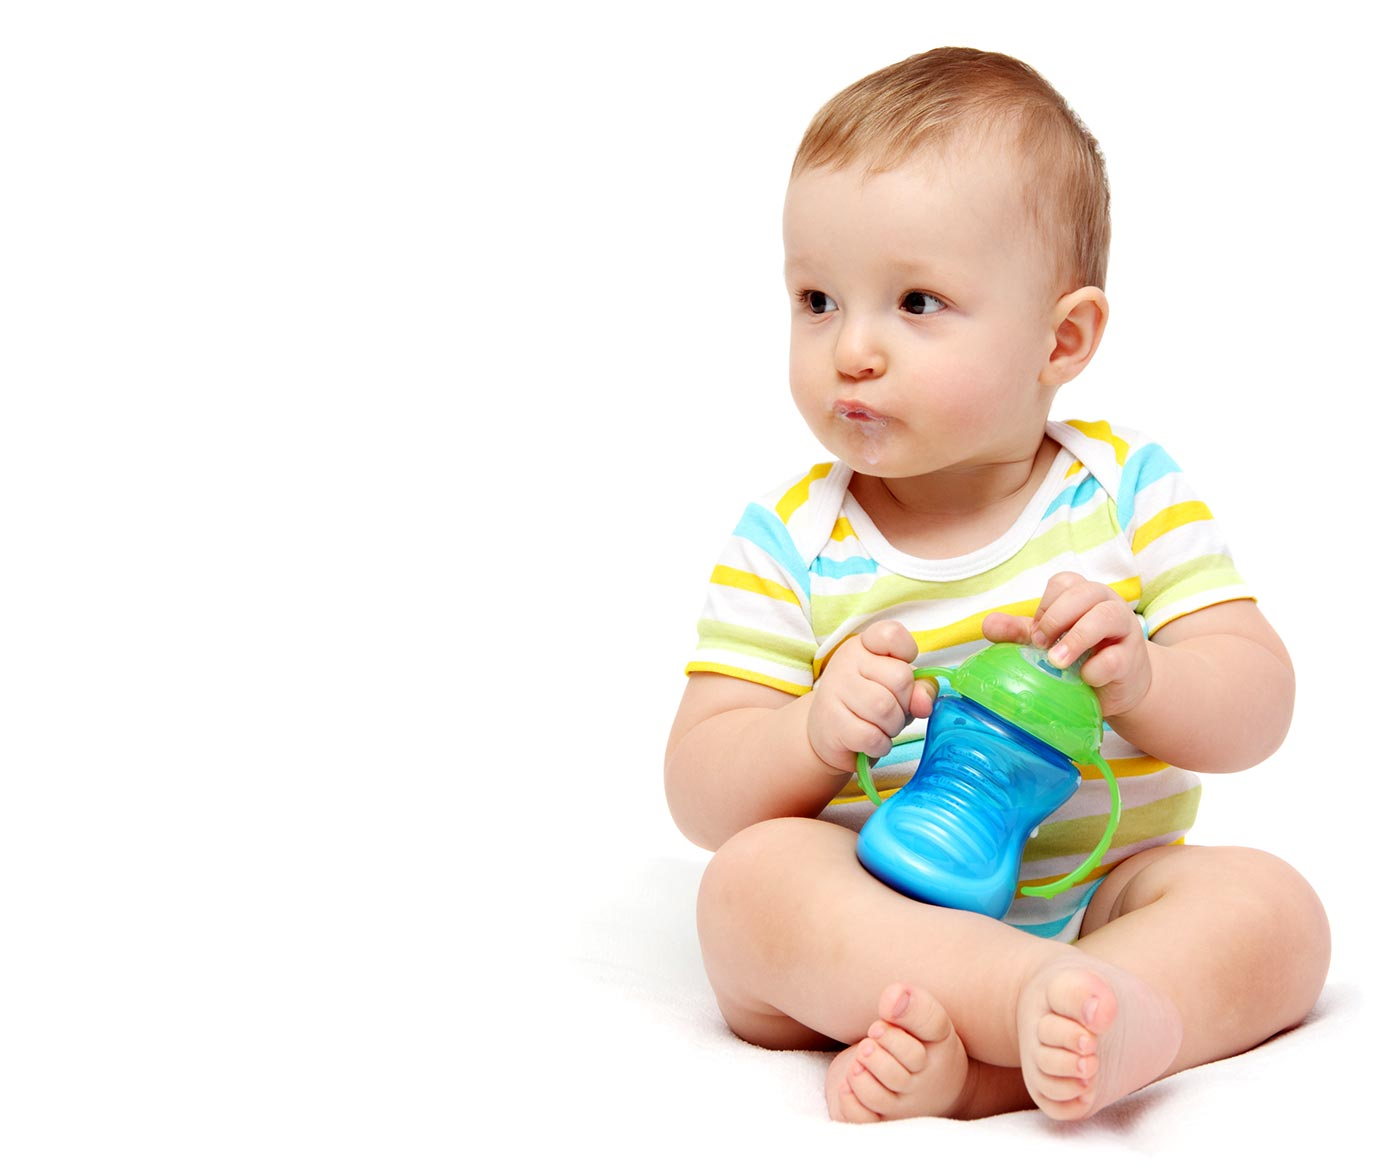 Baby holding a sippy cup of milk